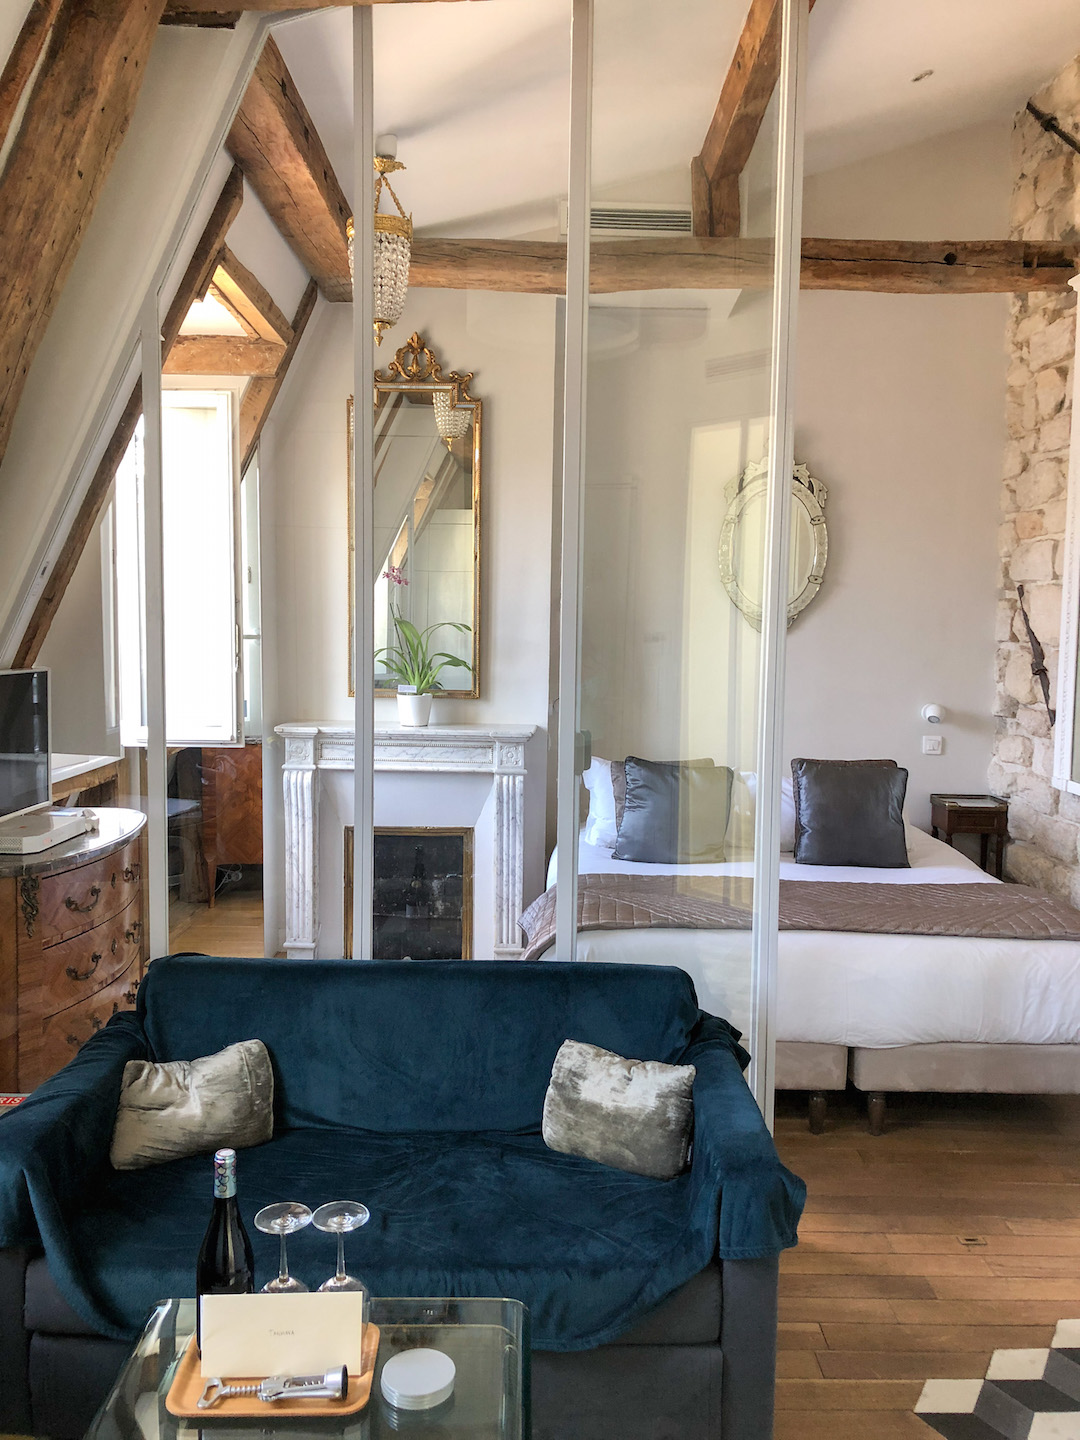 Our Airbnb in Le Marais Paris